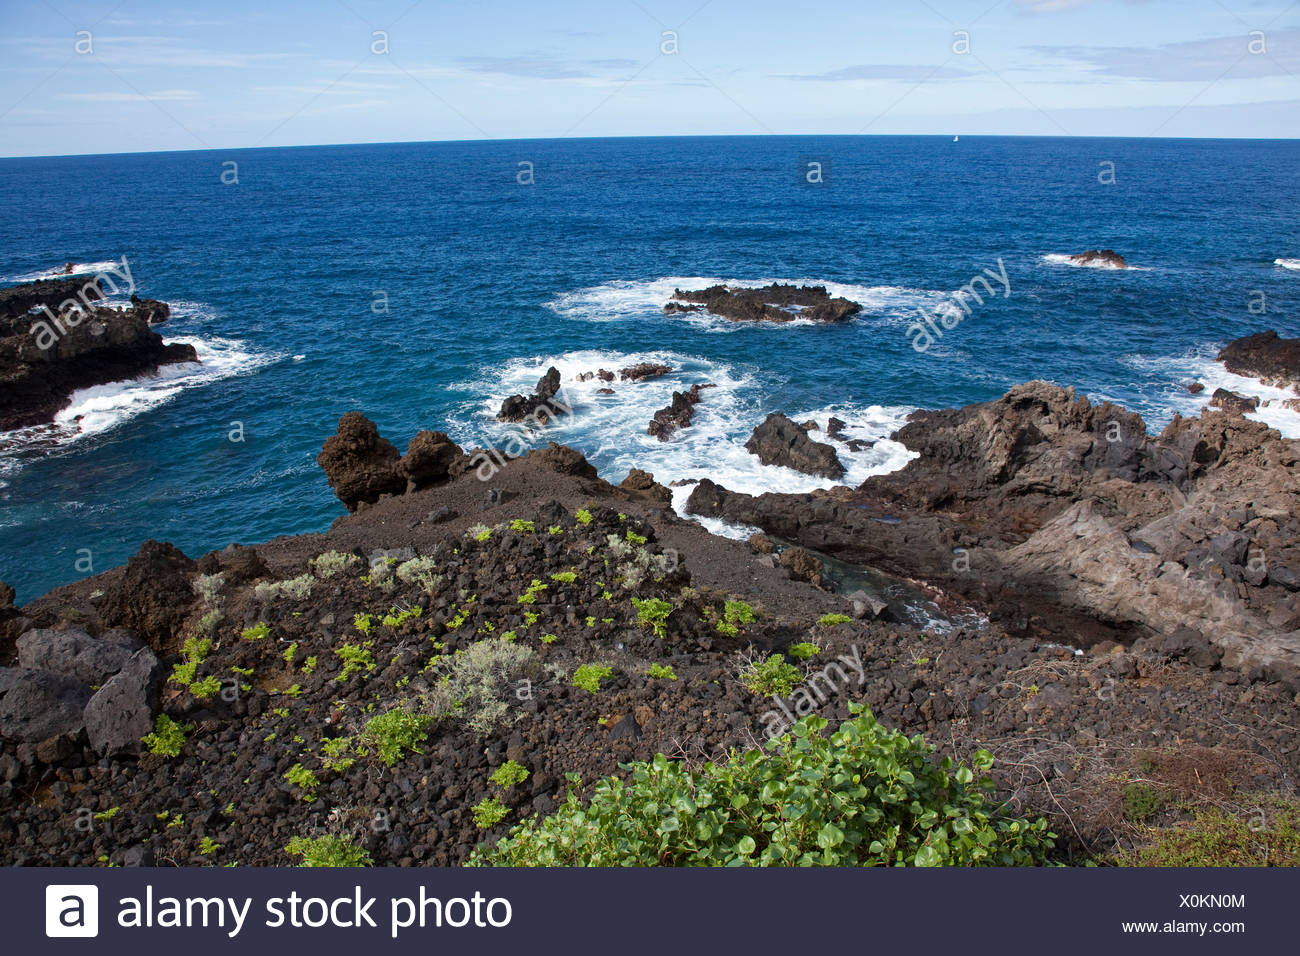 Rocky coast with sparse vegetation, Playa Cancajos, Santa Cruz in the back, La Palma, Canary Islands, Spain, Europe - Stock Image